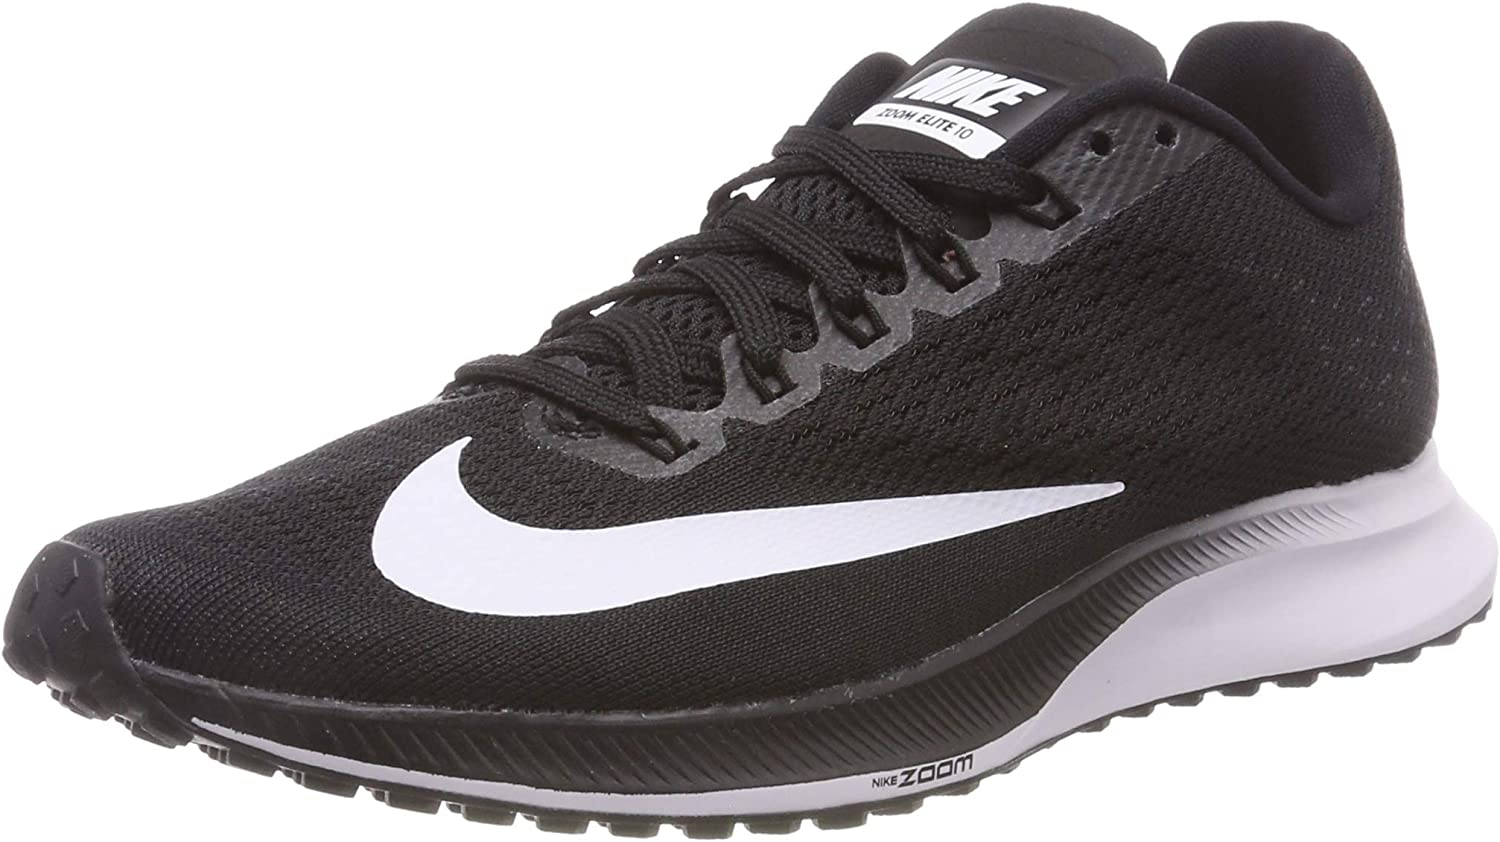 Nike Wmns Air Zoom Elite 10, Zapatillas de Running para Mujer, Negro (Black/White-Volt 001), 40 EU: Amazon.es: Zapatos y complementos